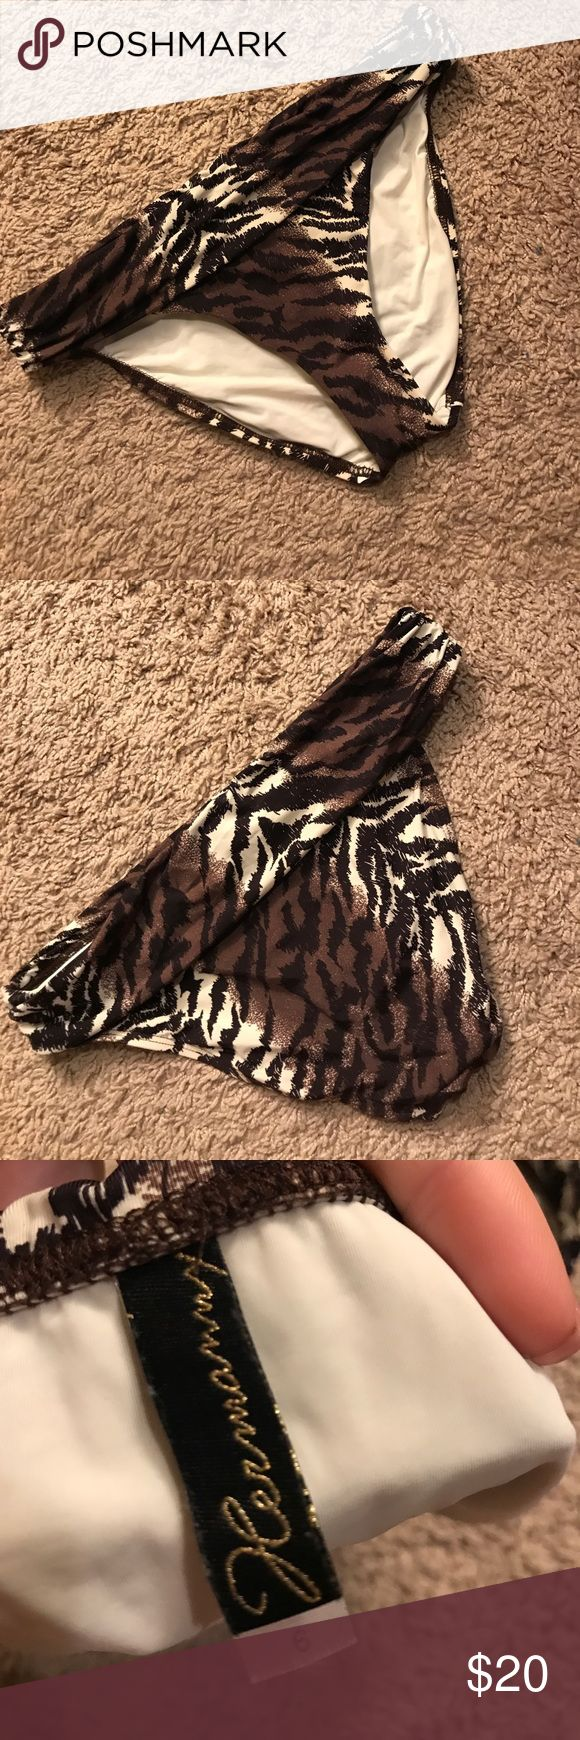 Hermanny by Vix Animal Print bikini Bottoms 6 Gorgeous soft material. Size 6. Colors are browns and cream Vix Swim Bikinis